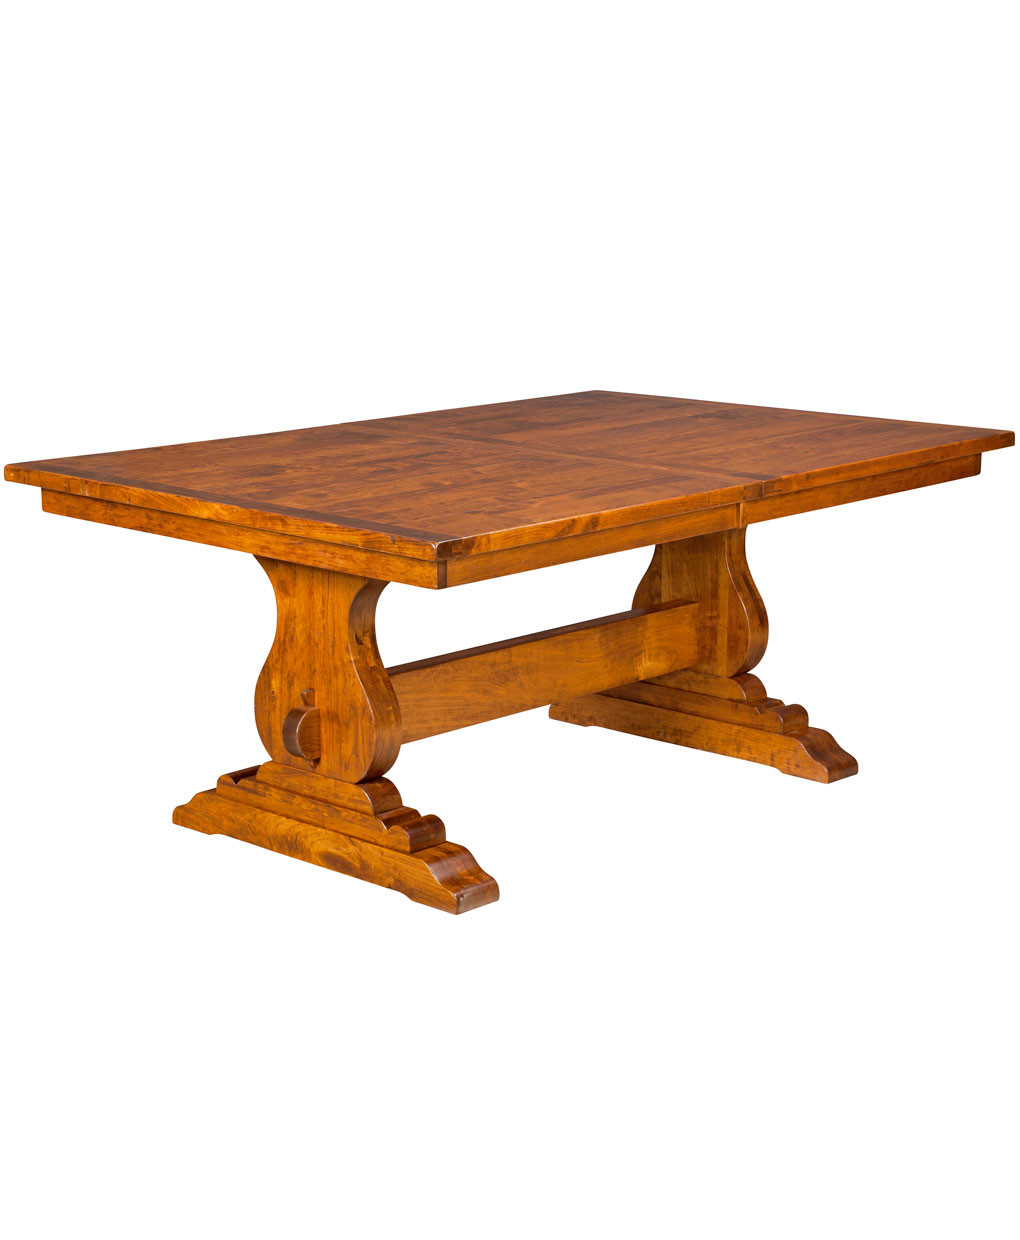 Best ideas about Trestle Dining Table . Save or Pin Austin Trestle Dining Table Amish Direct Furniture Now.